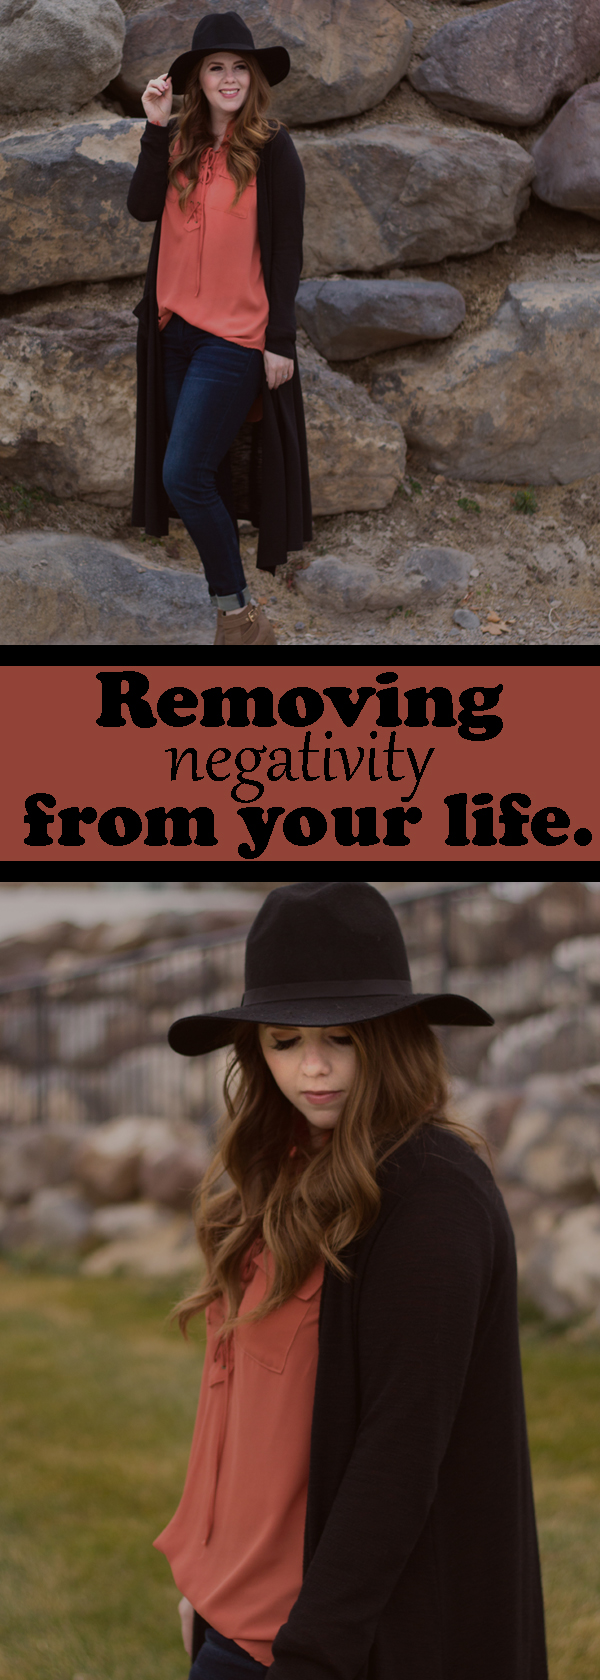 Removing negativity from your life